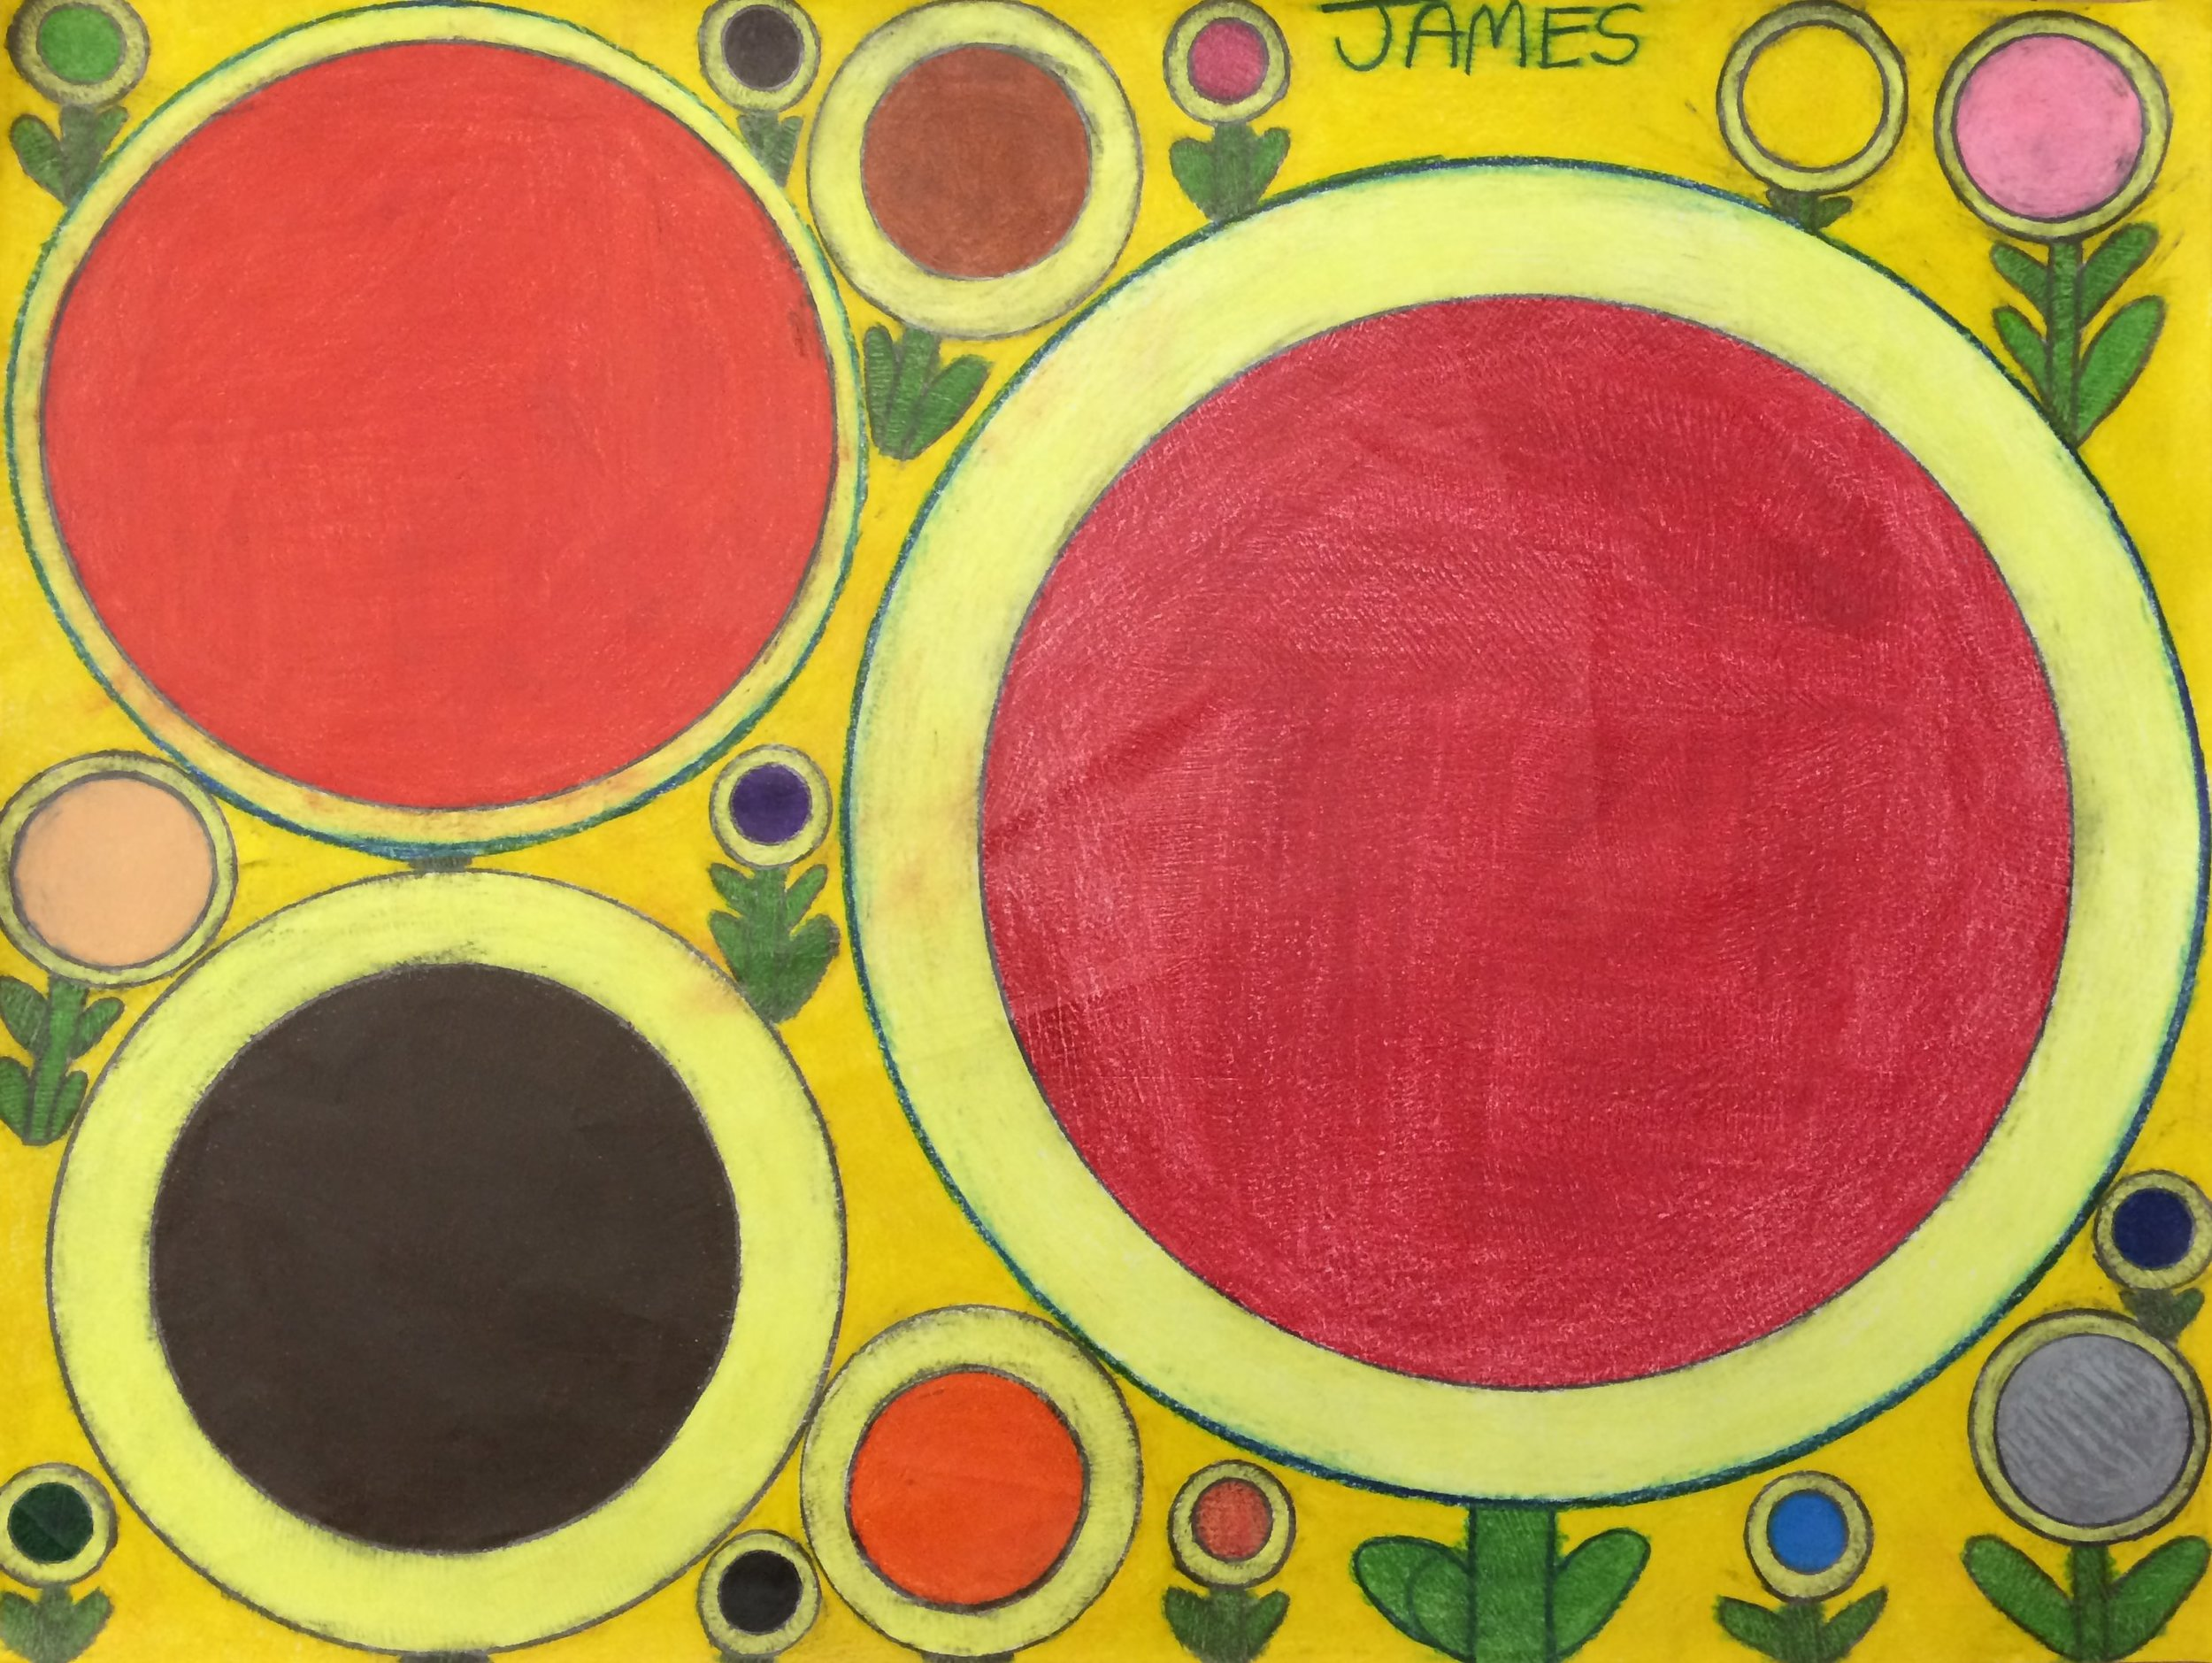 """James Rosa, Untitled, 2015, Mixed Media on Paper, 18""""x24"""""""